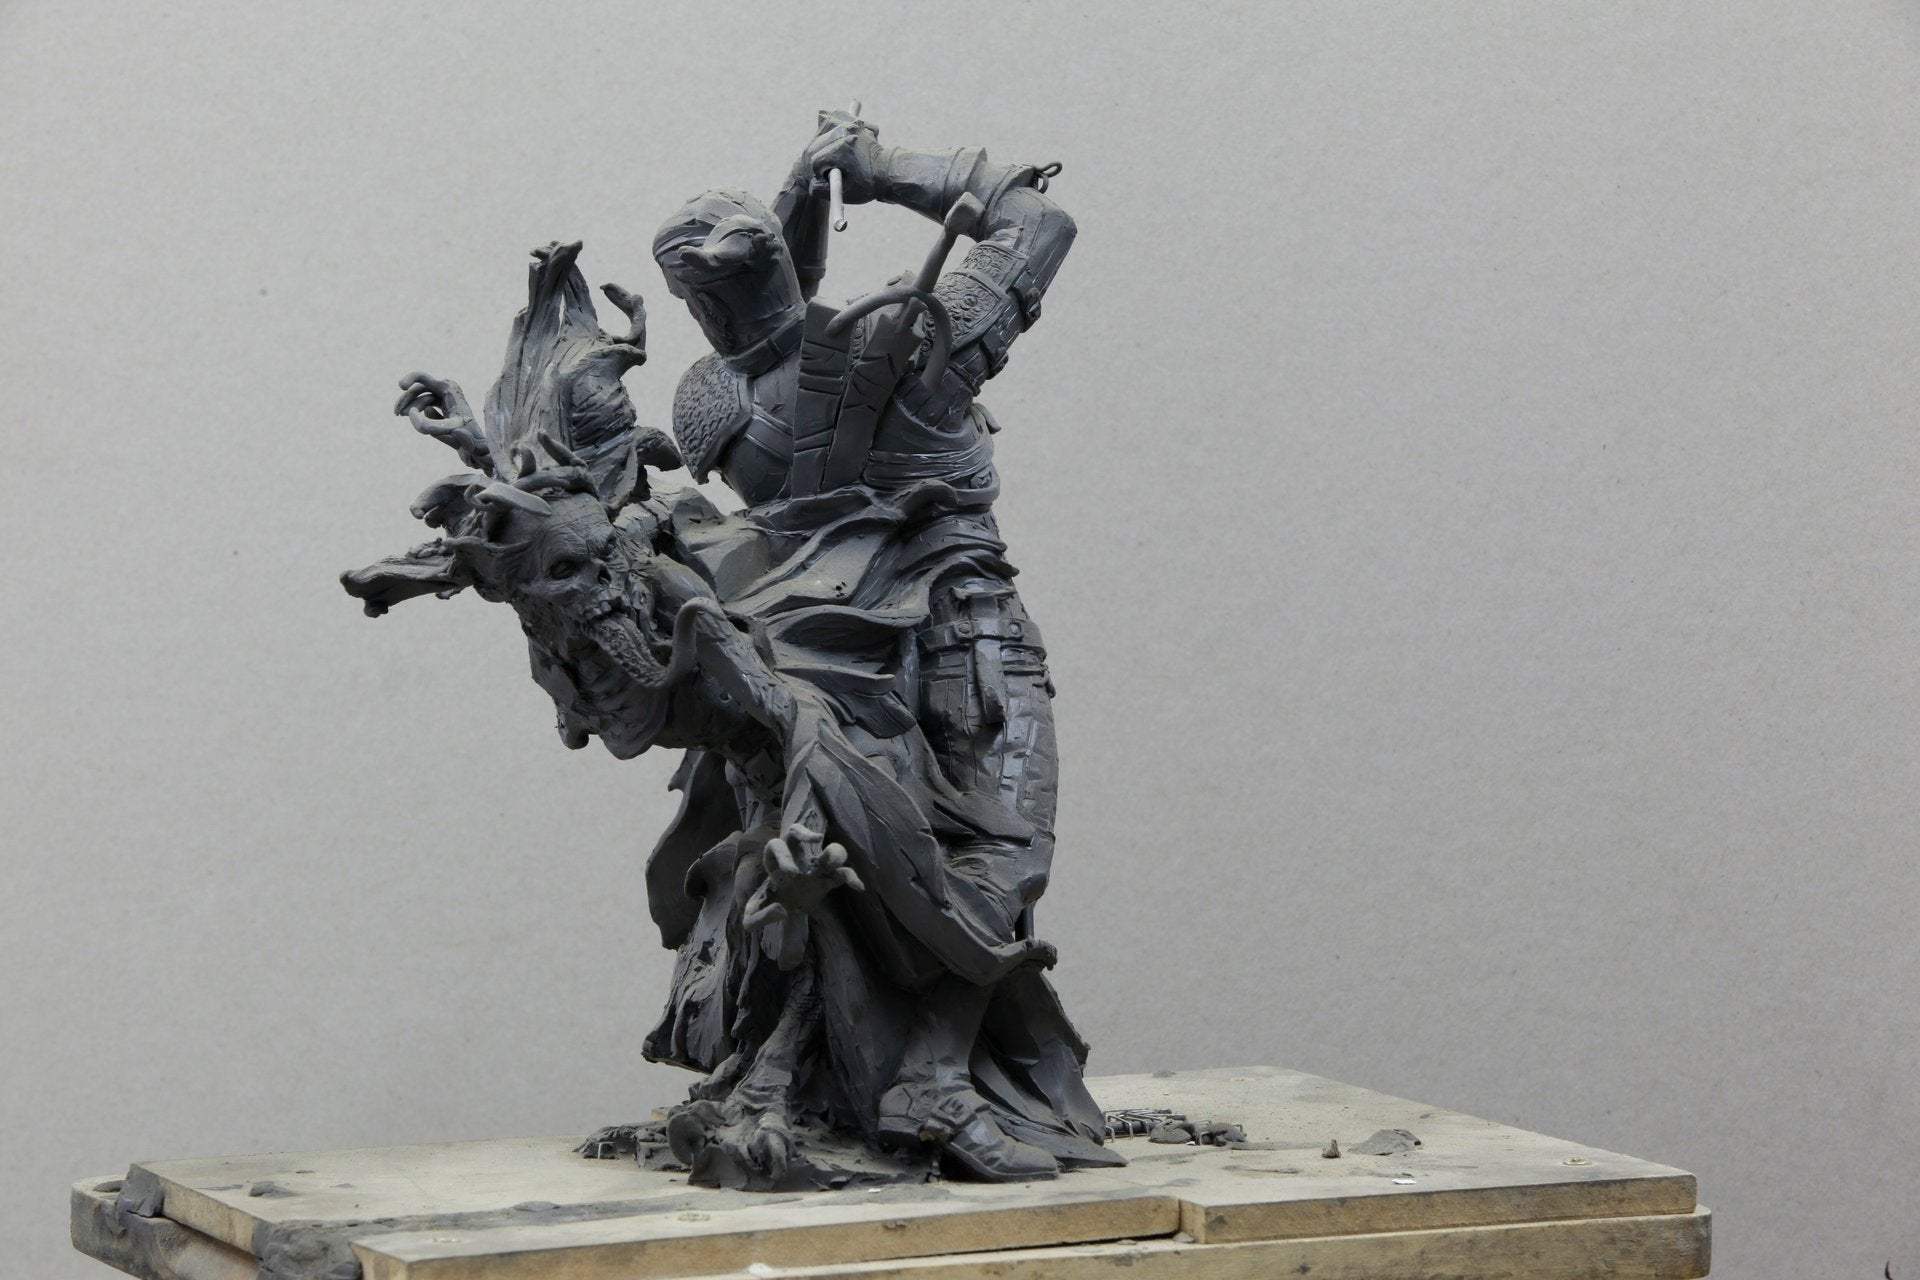 Giant Witcher 3 Sculpture Is As Handsome As Geralt